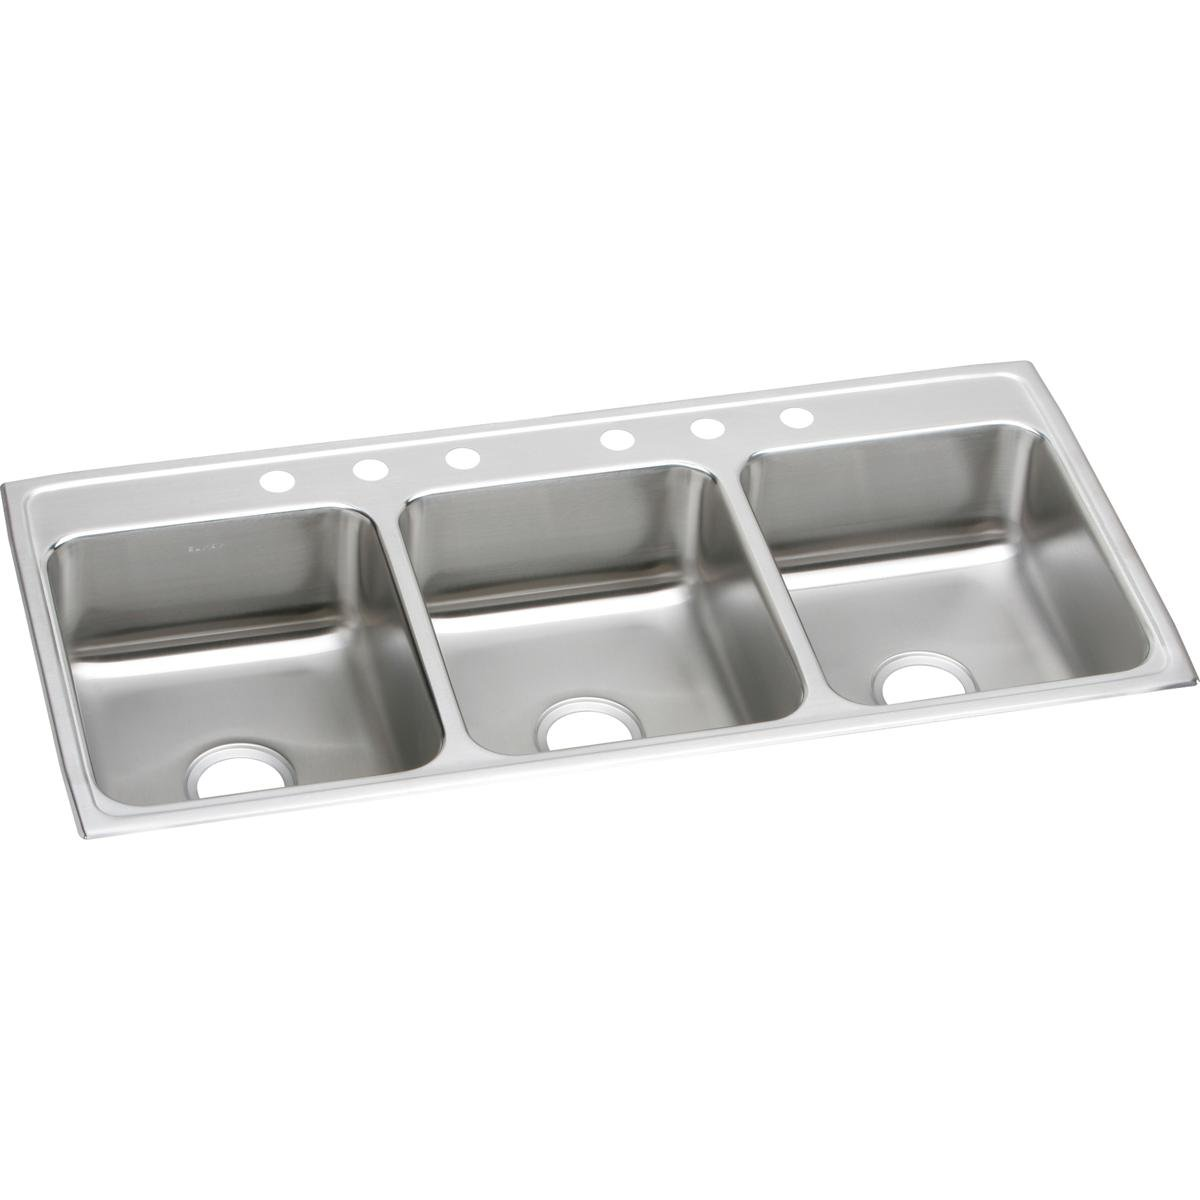 Elkay Lustertone LTR46226 Triple Bowl Top Mount Stainless Steel Kitchen Sink by Elkay